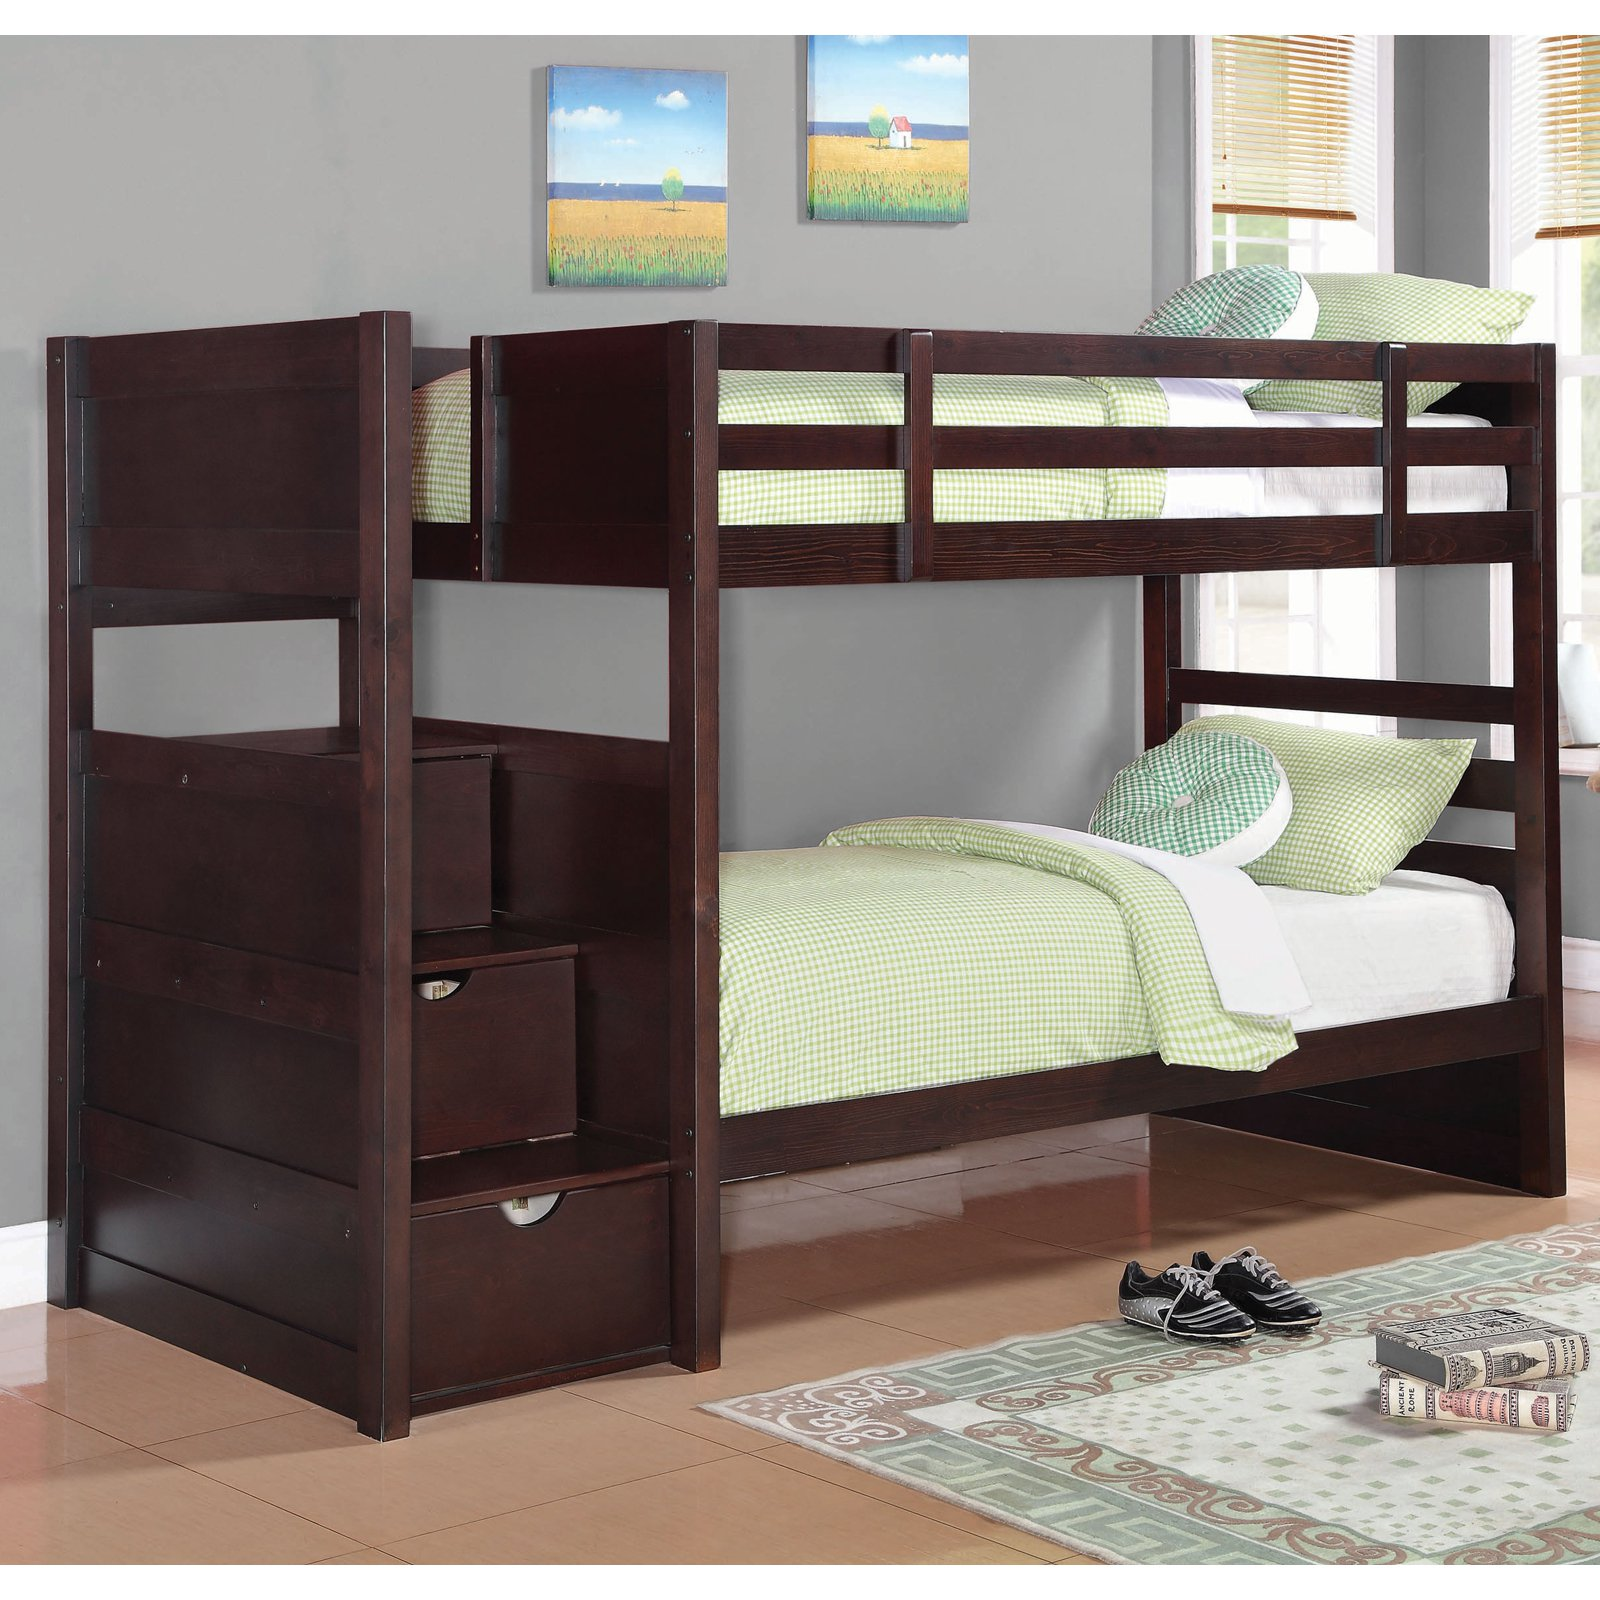 Coaster Furniture Elliott Twin Bunk Bed With Staircase Drawers